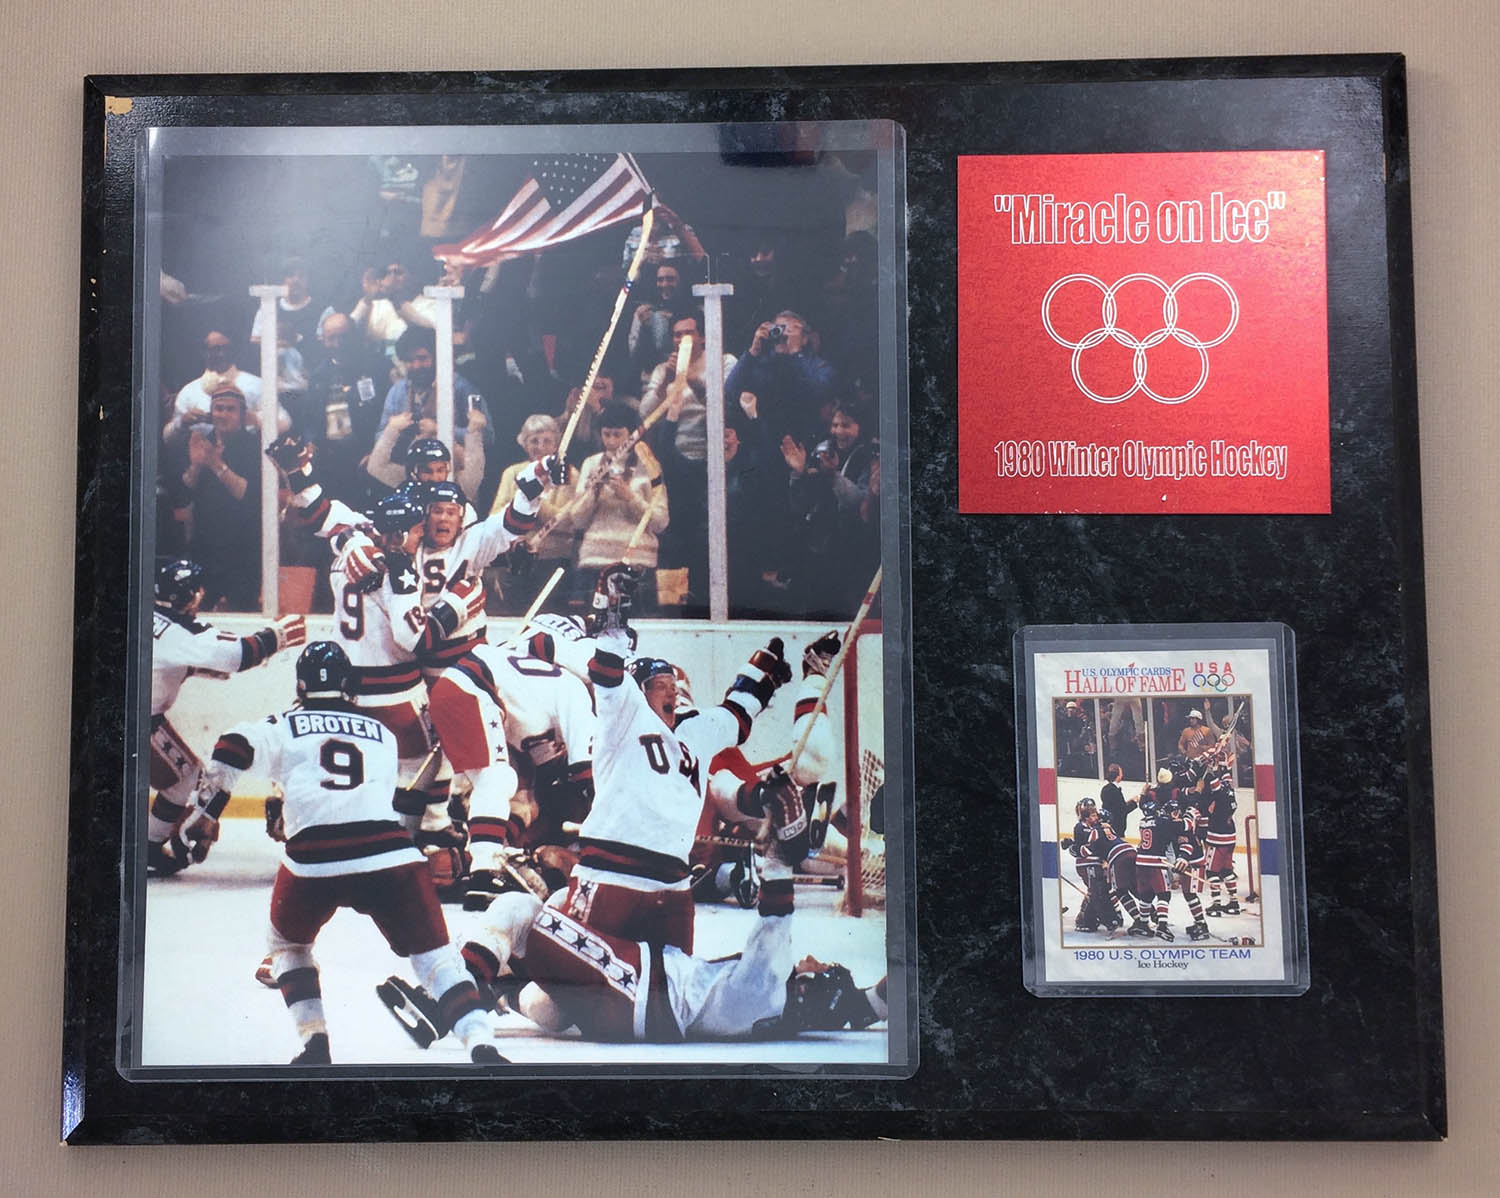 Miracle on Ice commemorative Plaque and Card